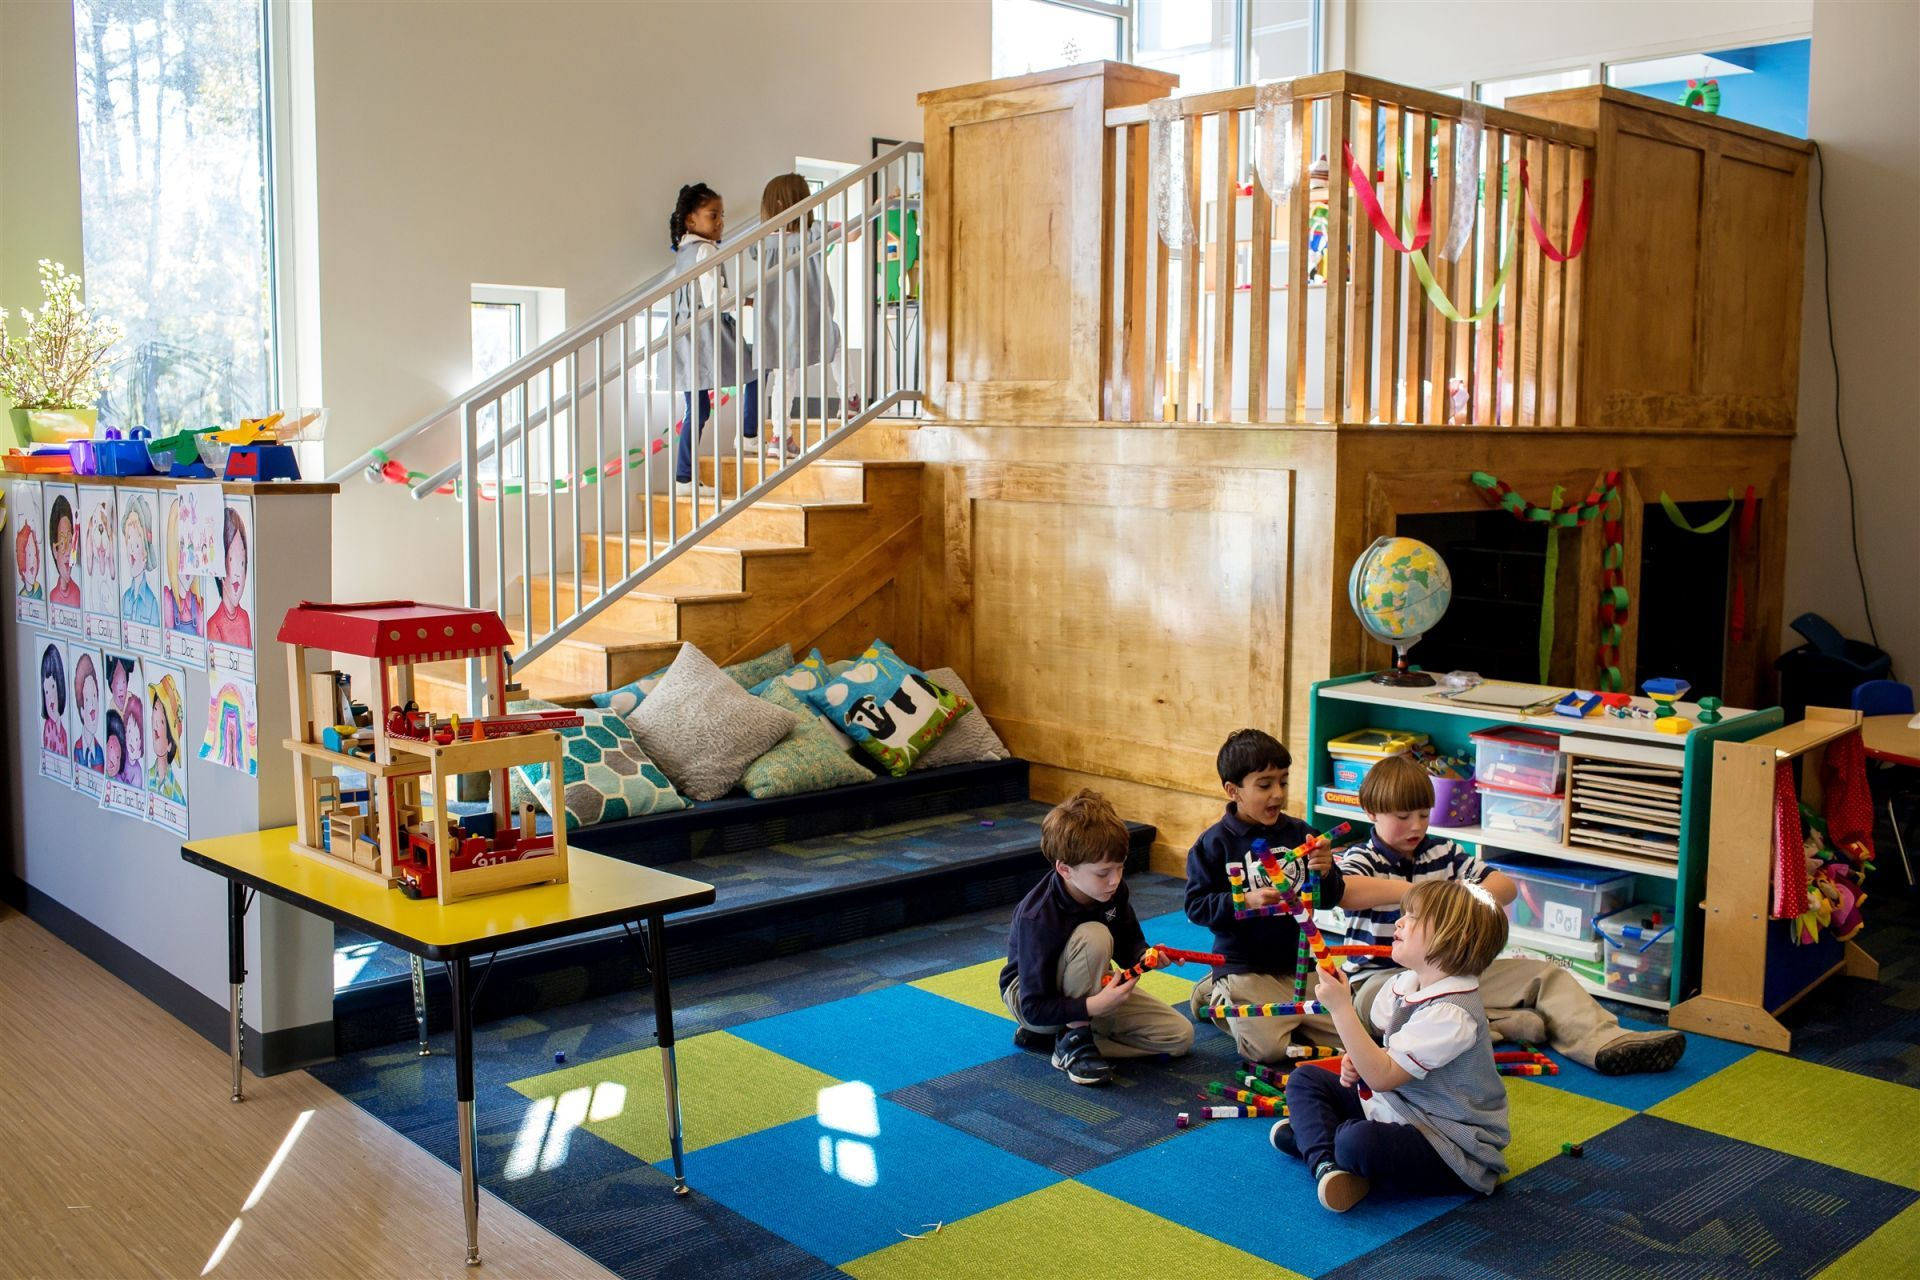 Early Childhood classrooms incorporate many distinct spaces and multiple levels.